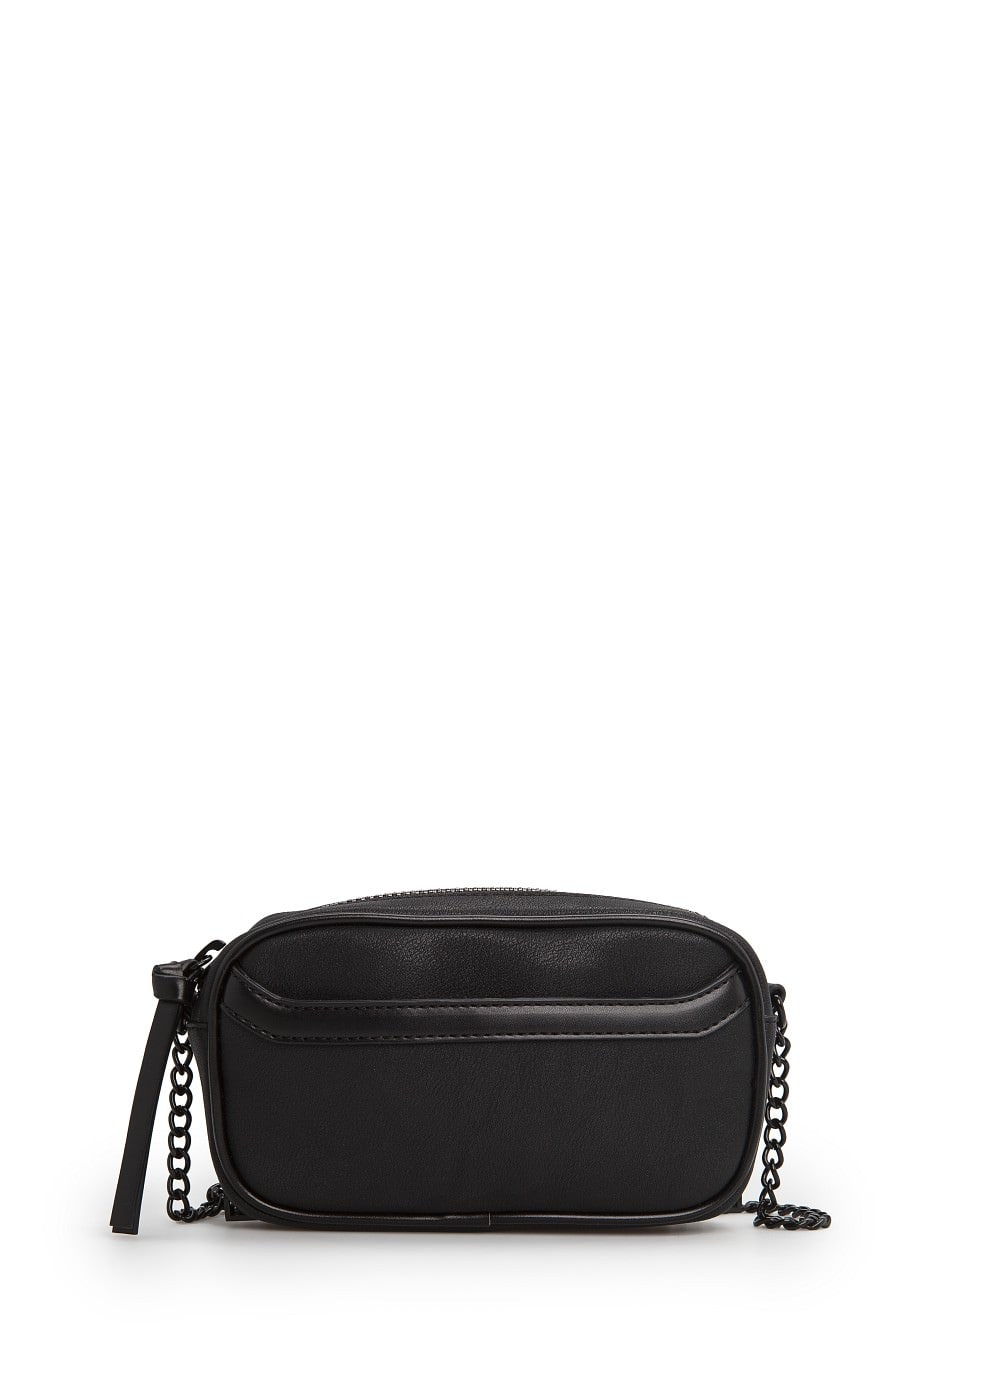 Chain mini cross body bag